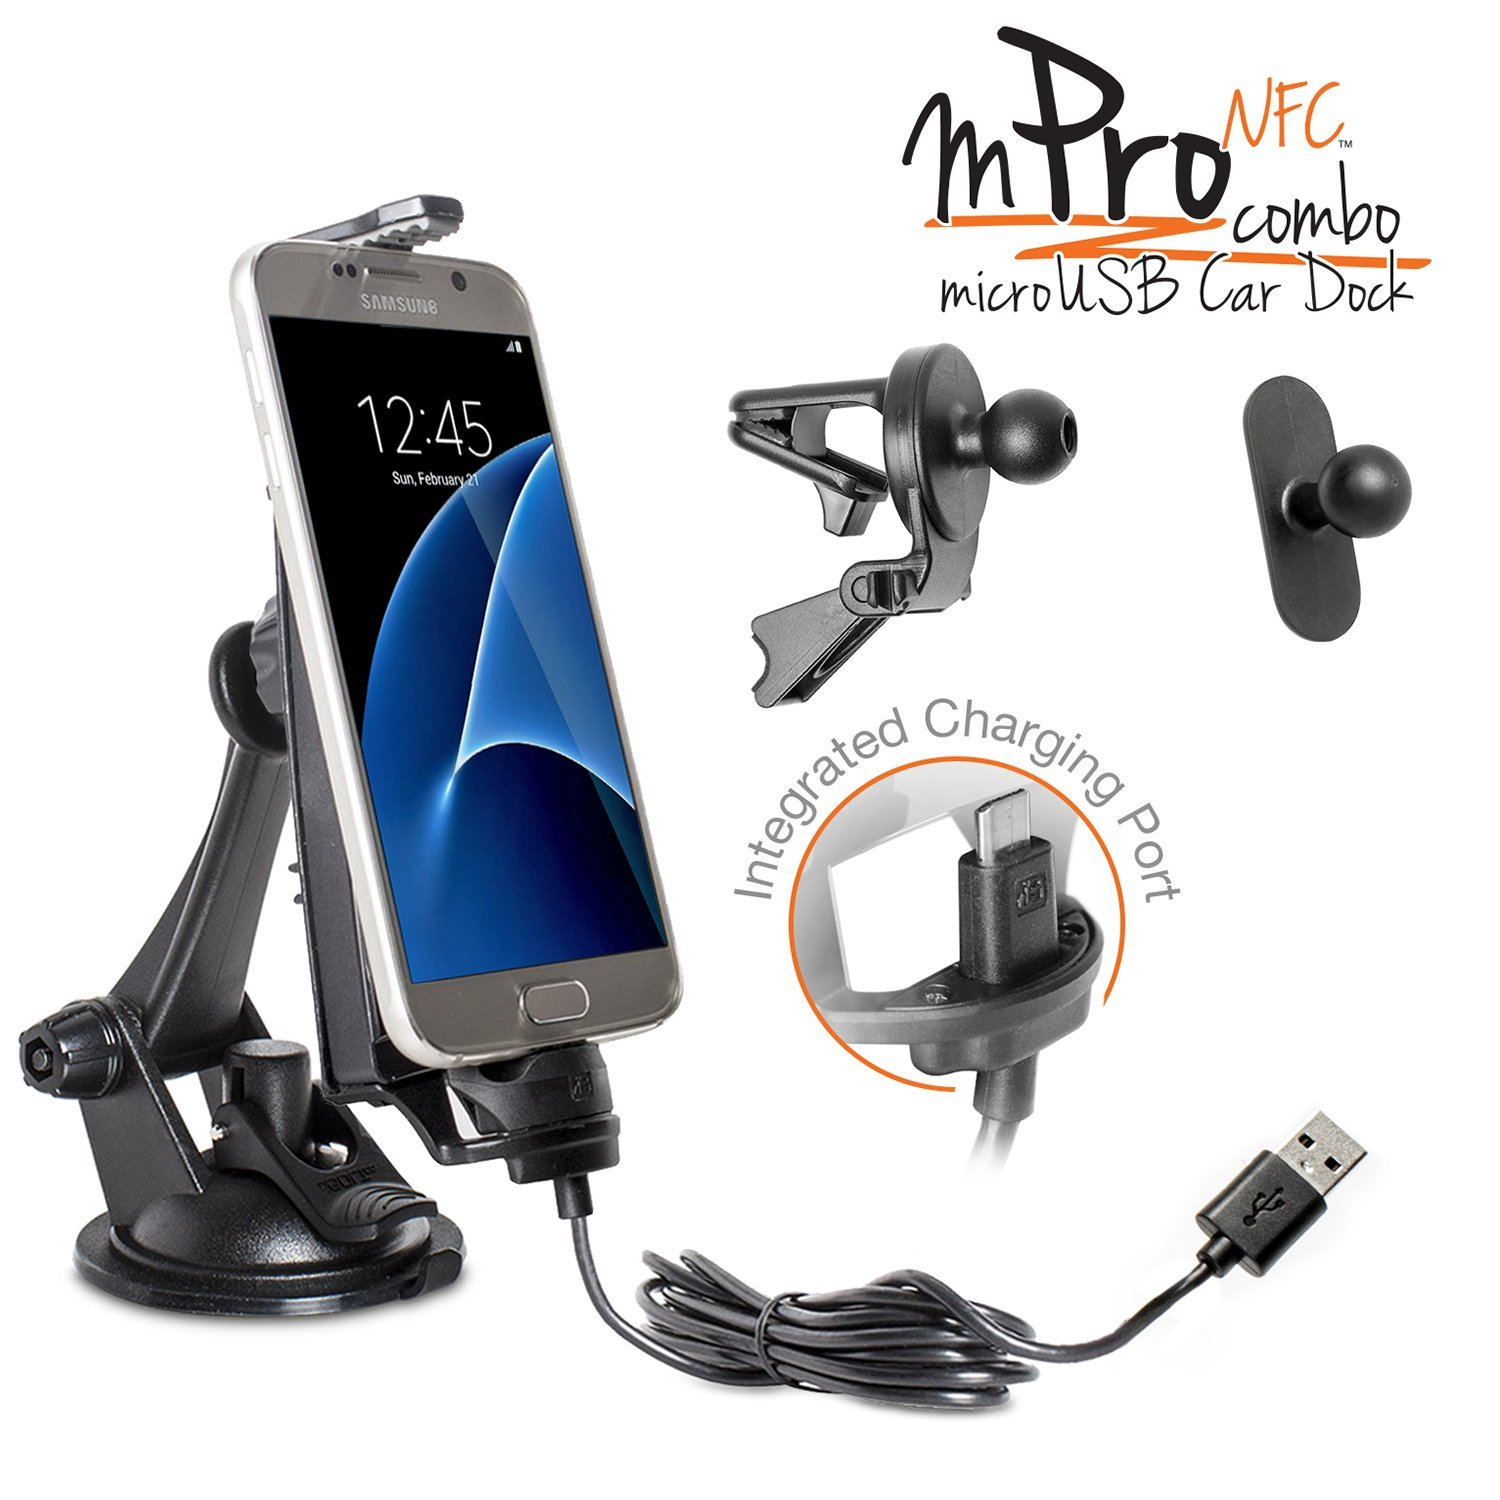 iBOLT mProNFC Combo Car Dock / Mount for Android phones- 3 mounts (suction cup mount, vent mount , and mini mount), and a 2m microUSB Cable- Compatible w/ Samsung Galaxy S6 / S7